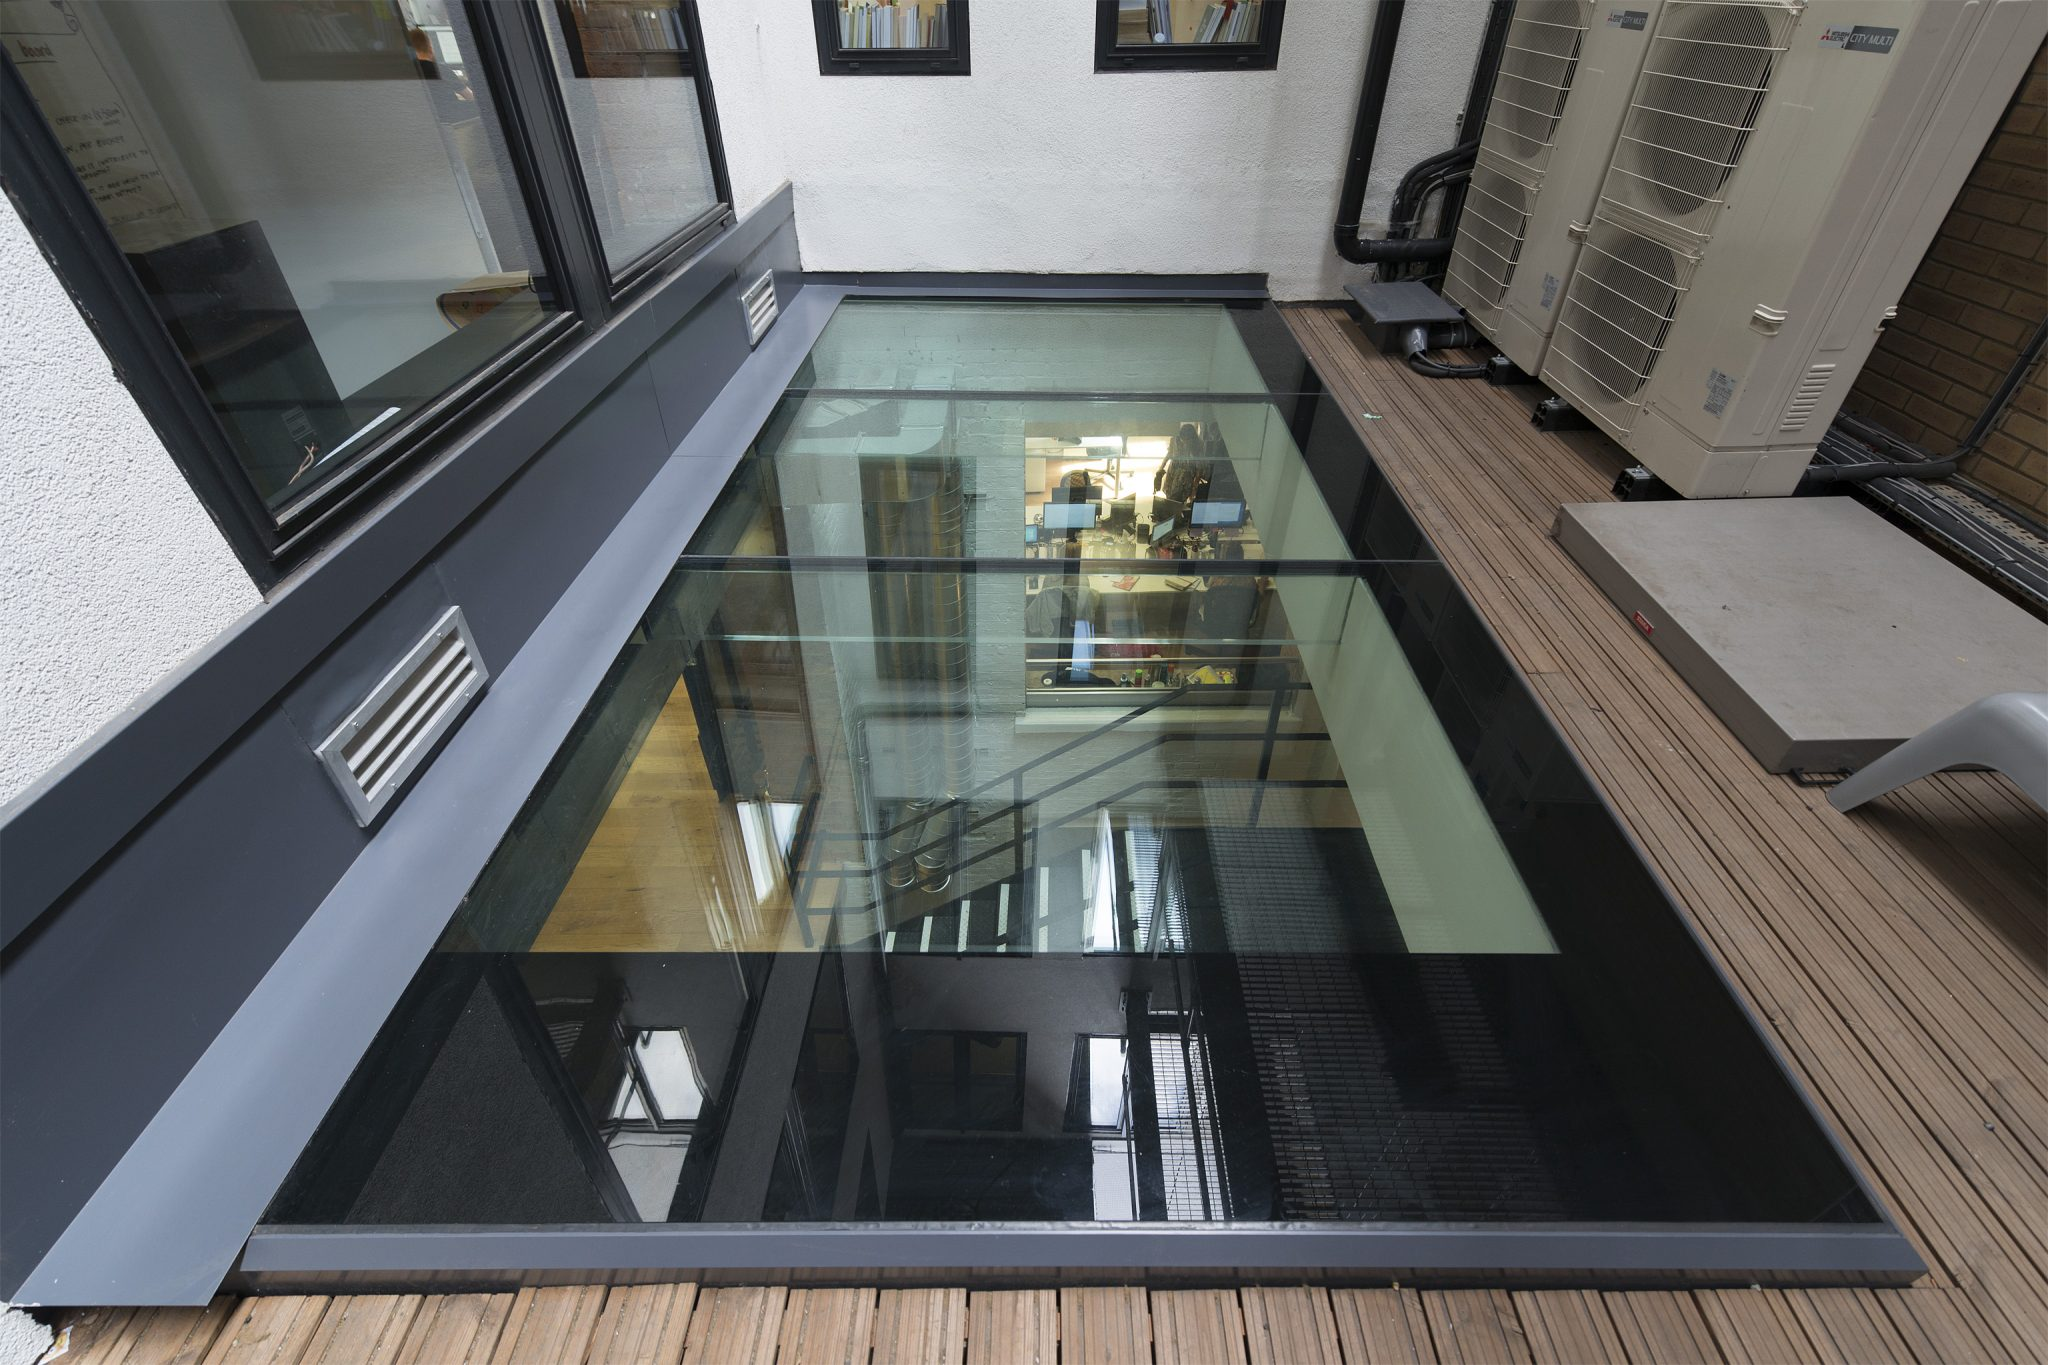 Bespoke Multi-Panel Walk-on Rooflight with Glass Beams